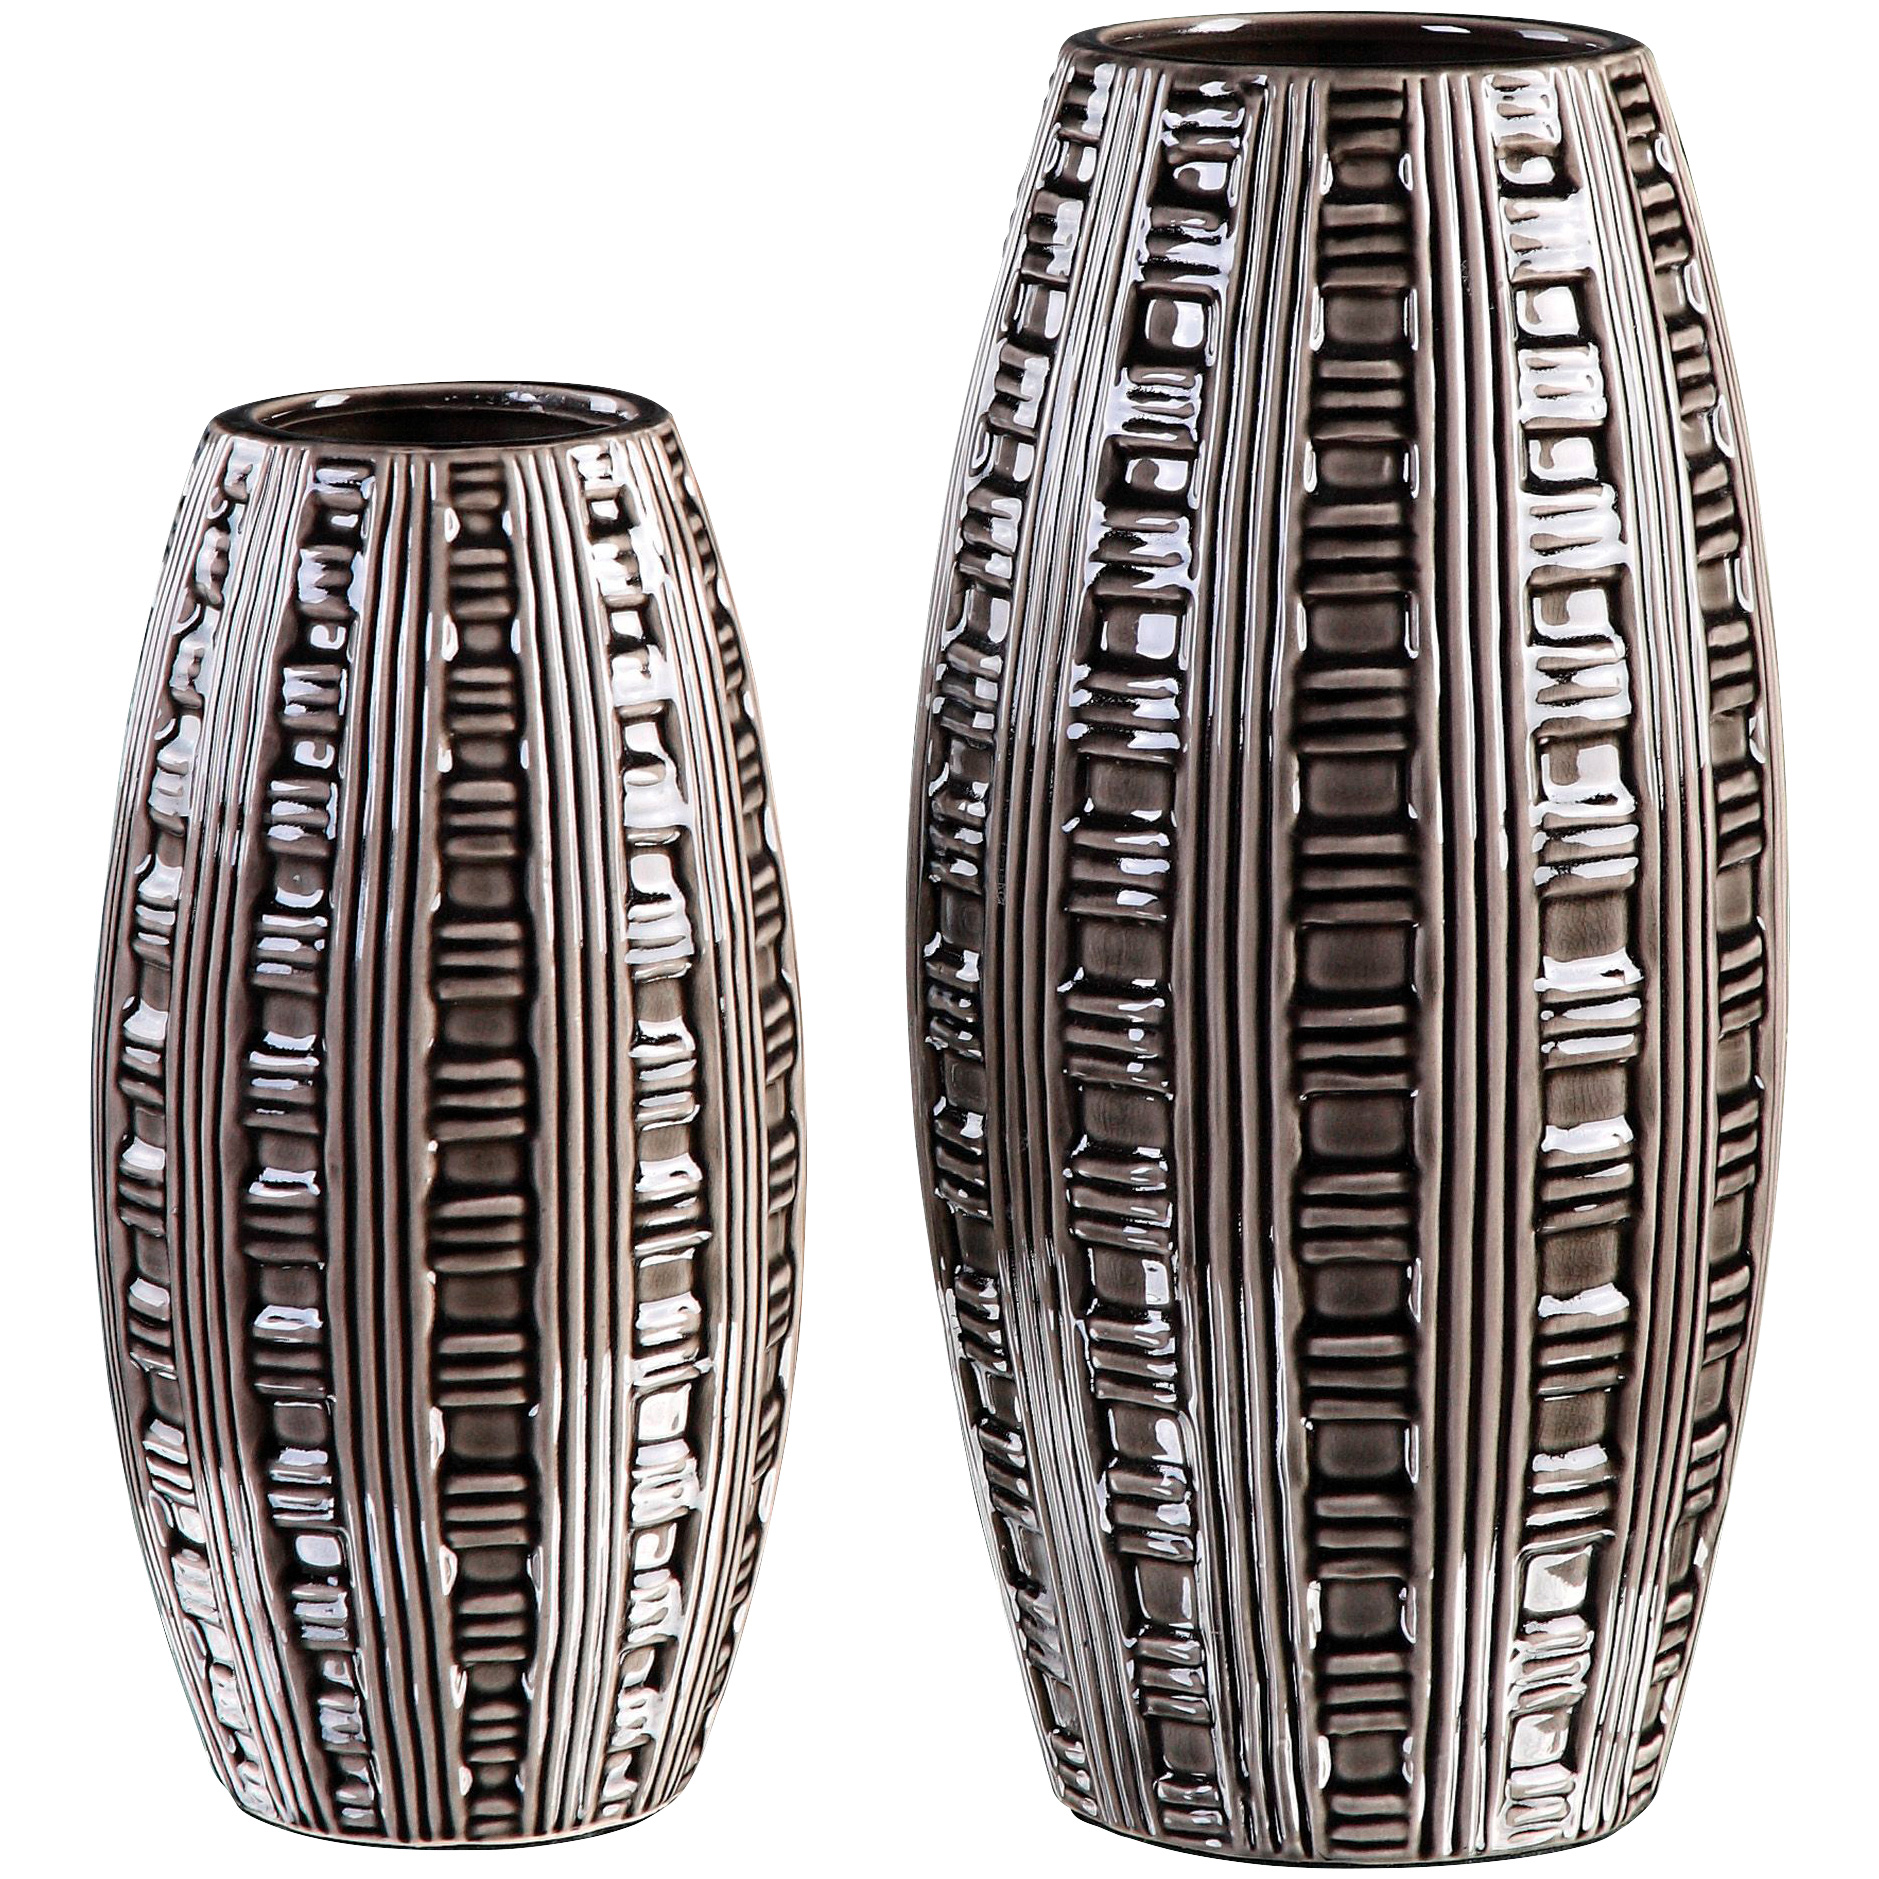 Uttermost | Aura Set of 2 Weave Pattern Vases | Black